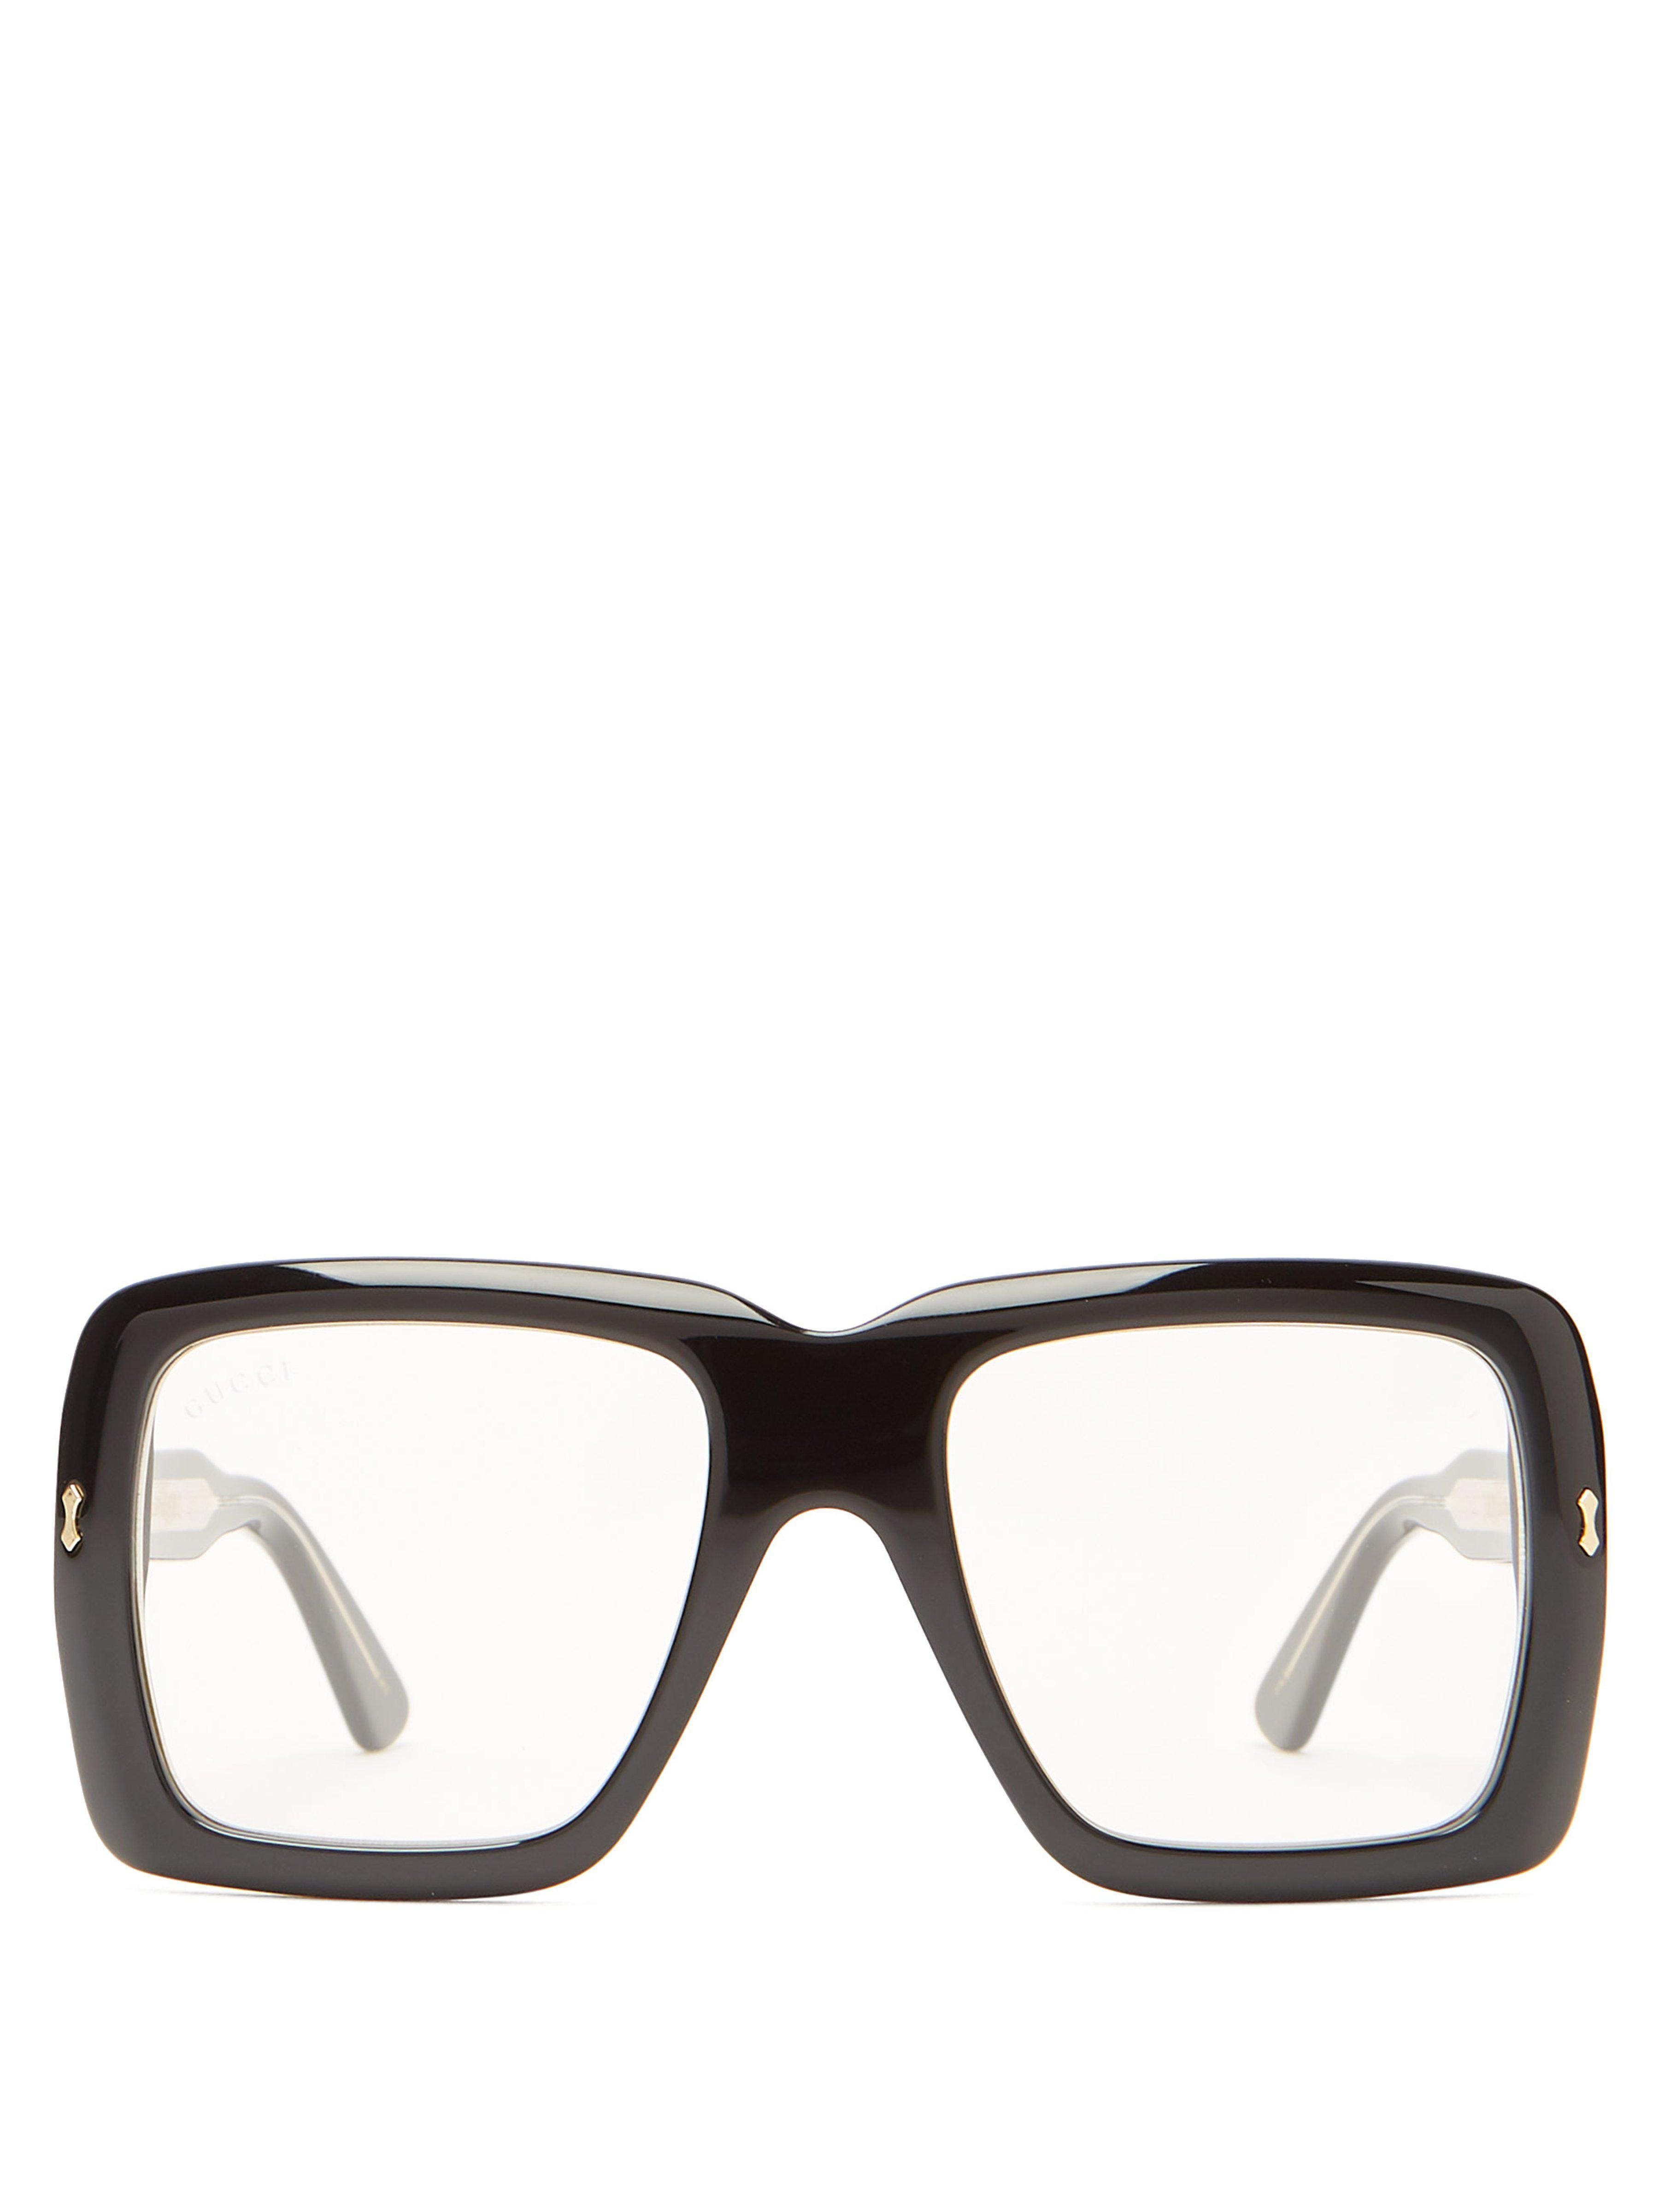 c40b9f522ac Gucci Oversized Square Frame Acetate Glasses in Black for Men - Lyst